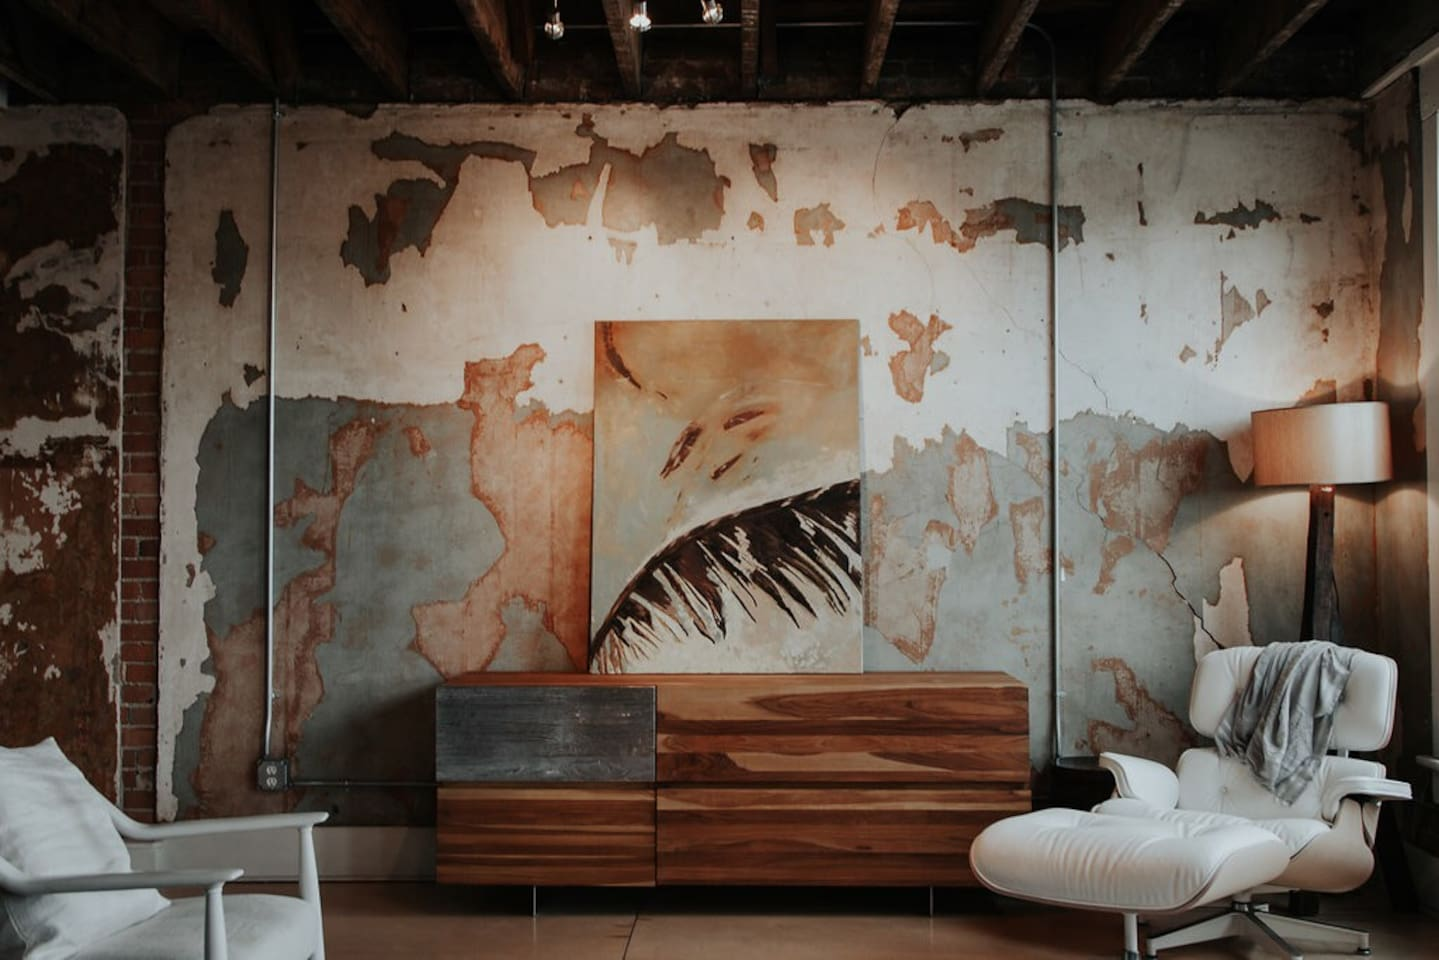 Gorgeous, natural light filled living room featuring remnants of original decor, a view of historic downtown Benton Harbor, and chic retro-cool furniture.